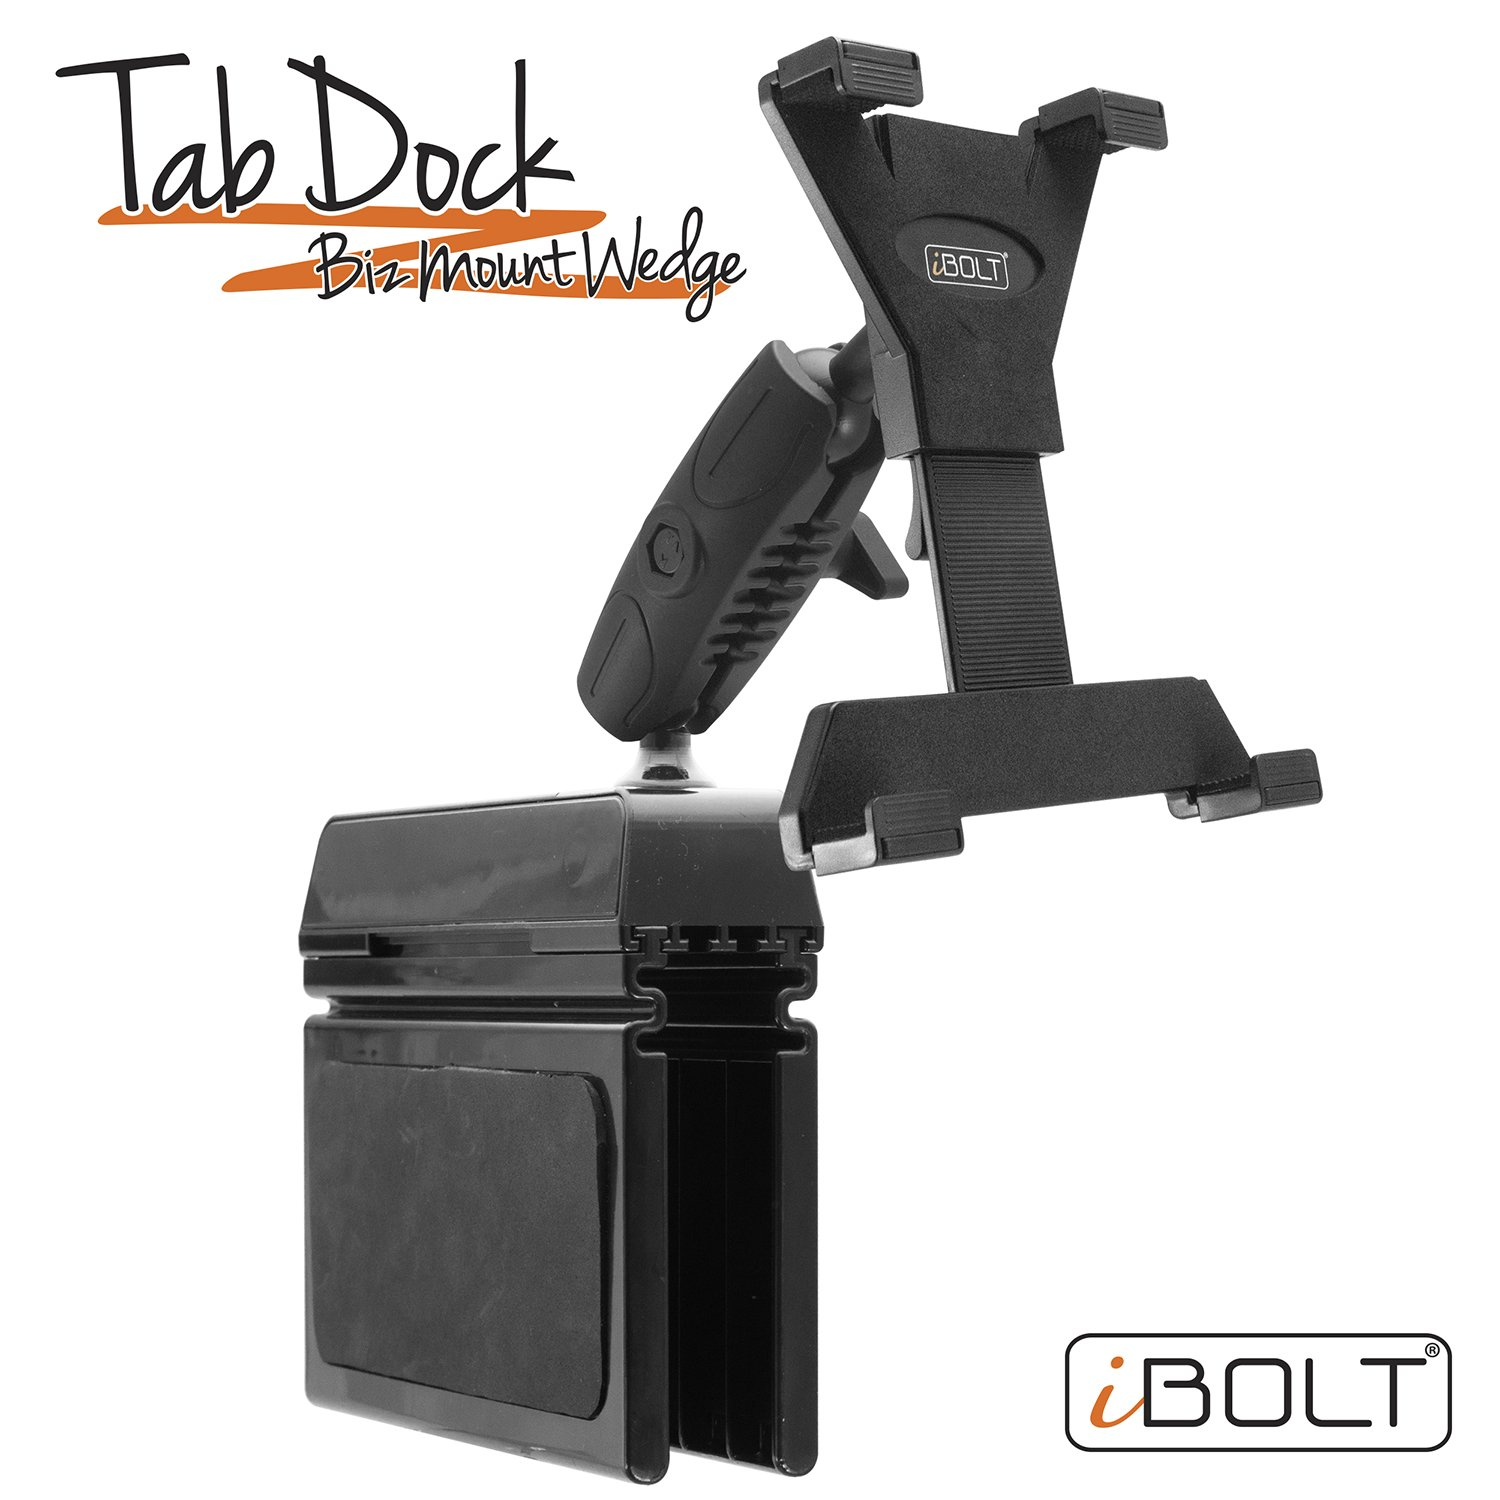 iBOLT TabDock Bizmount Wedge - Heavy Duty Vehicle Console mount for all 7'' - 10'' tablets (iPad, Nexus, Samsung Tab). Great for work, personal, and business vehicles